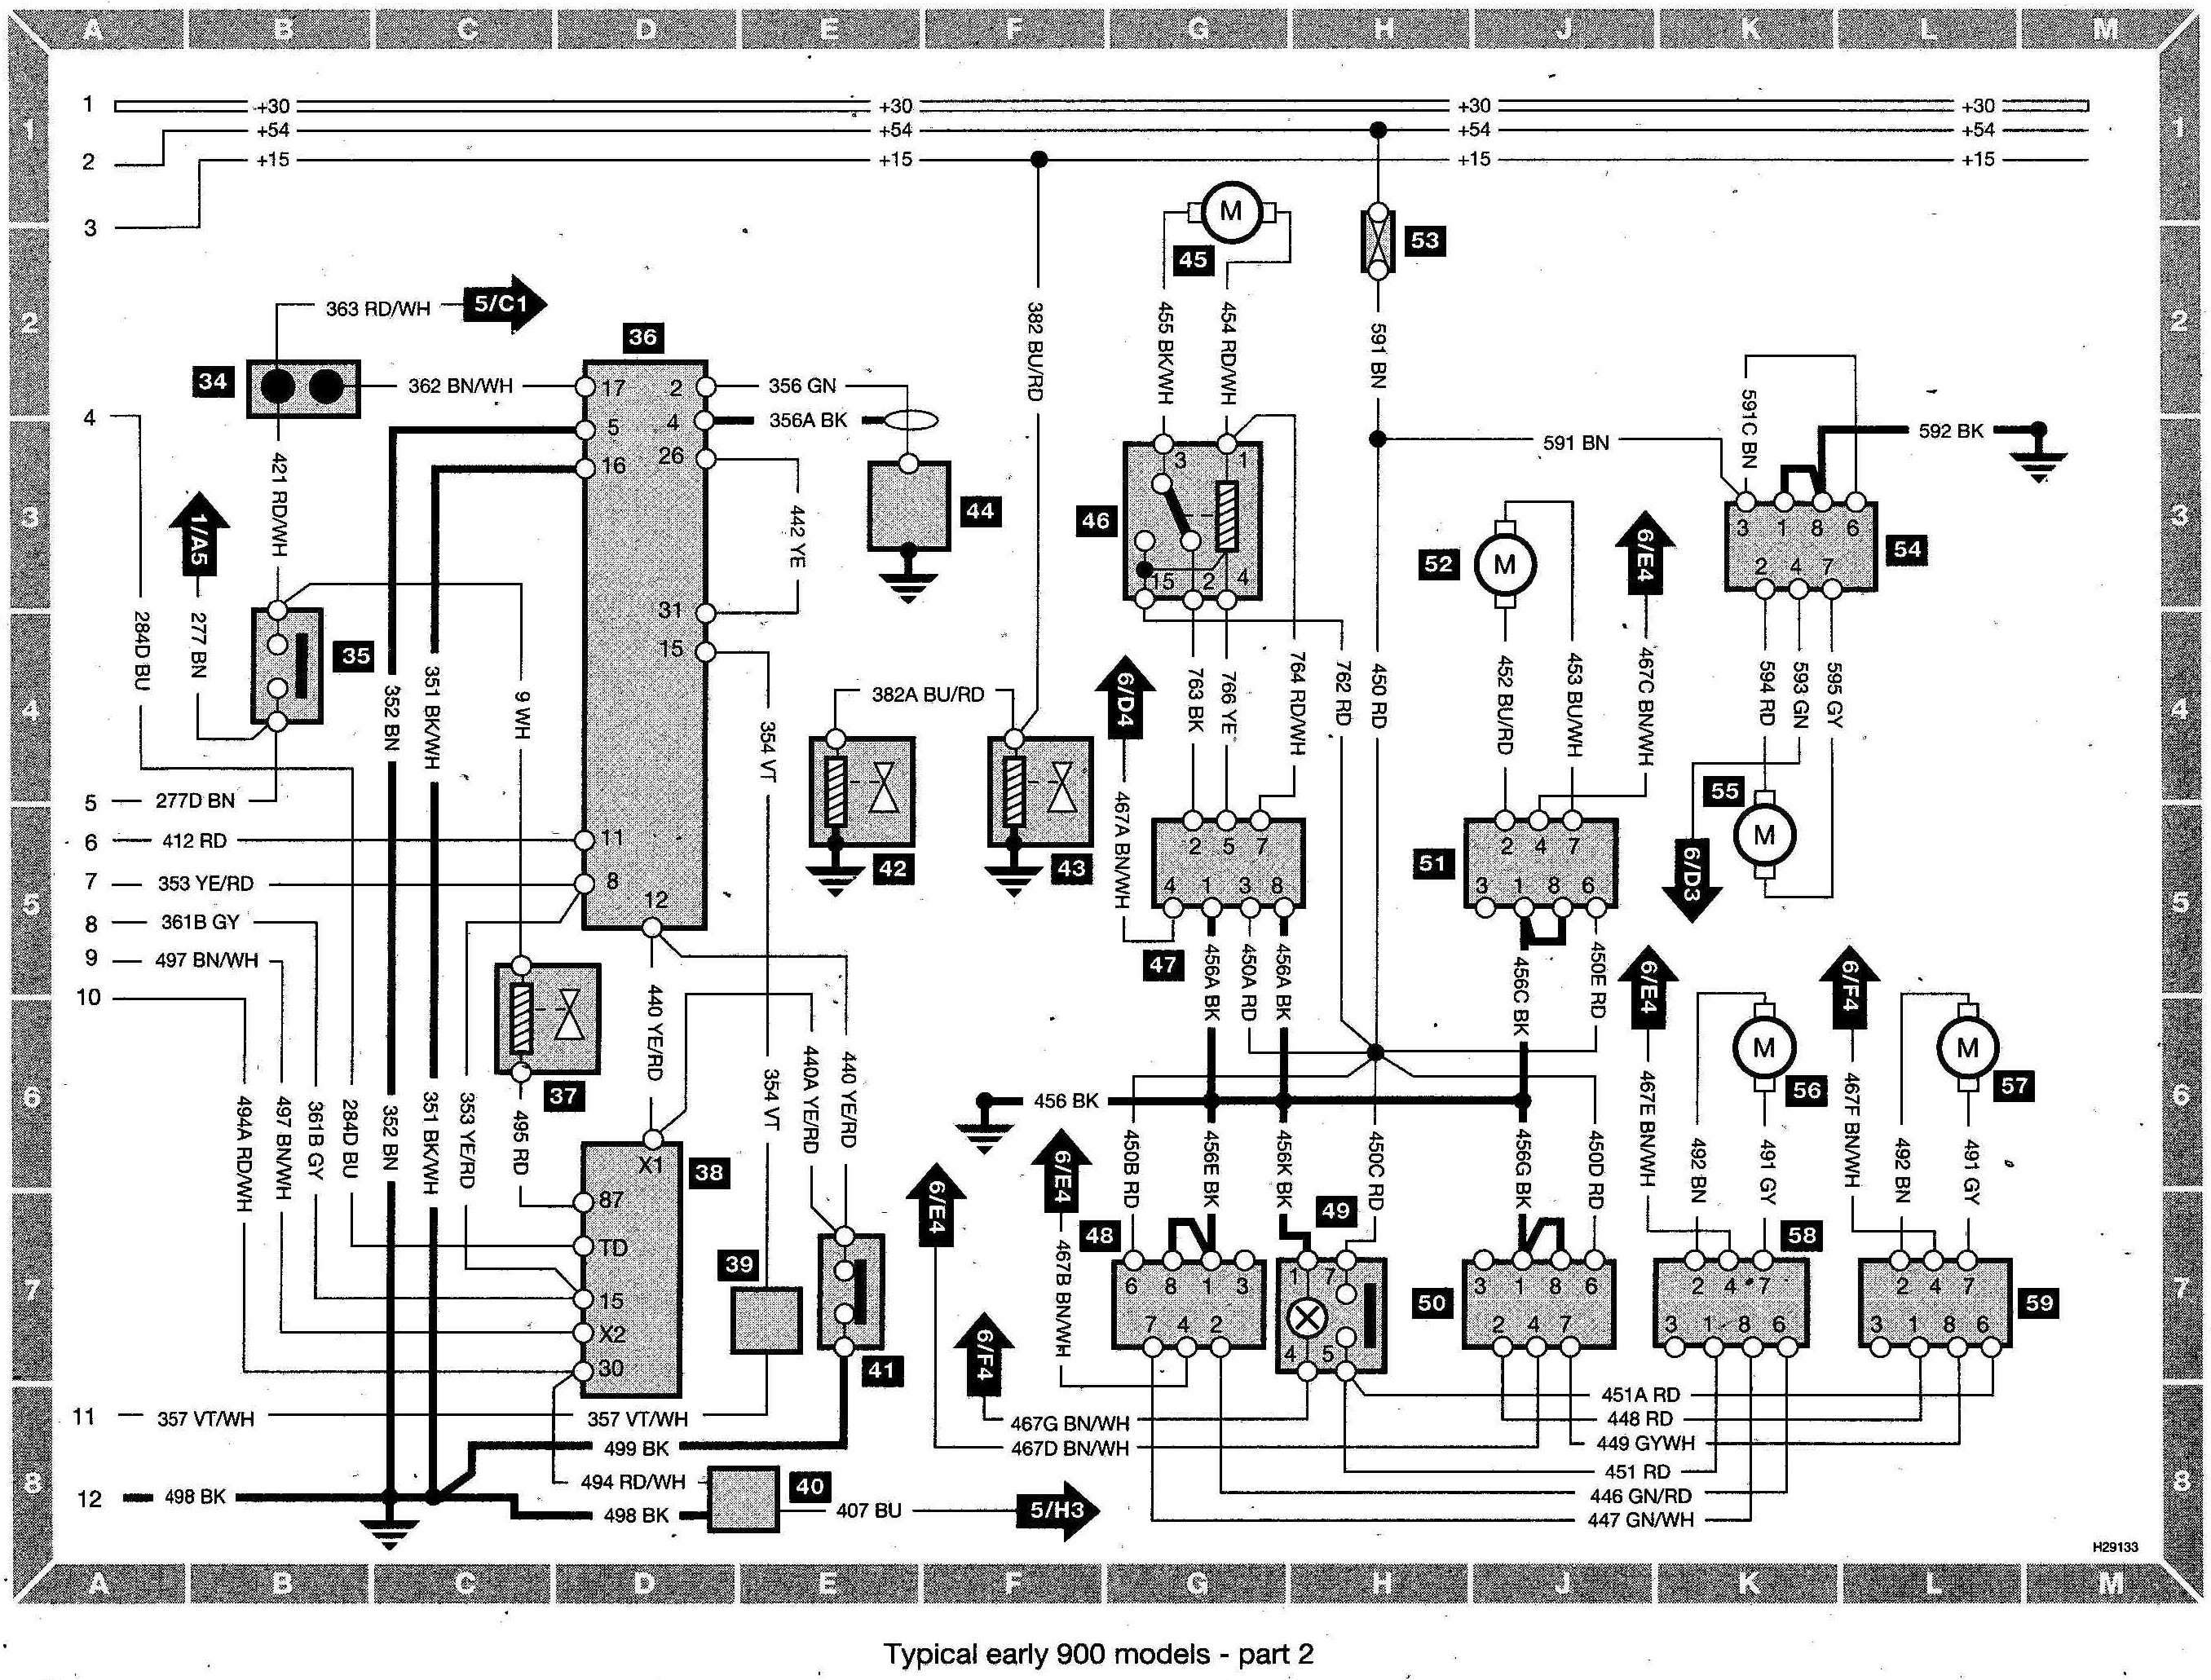 saab 9000 vacuum diagram diy enthusiasts wiring diagrams \u2022 2006 saab 9  -5 fuse 2003